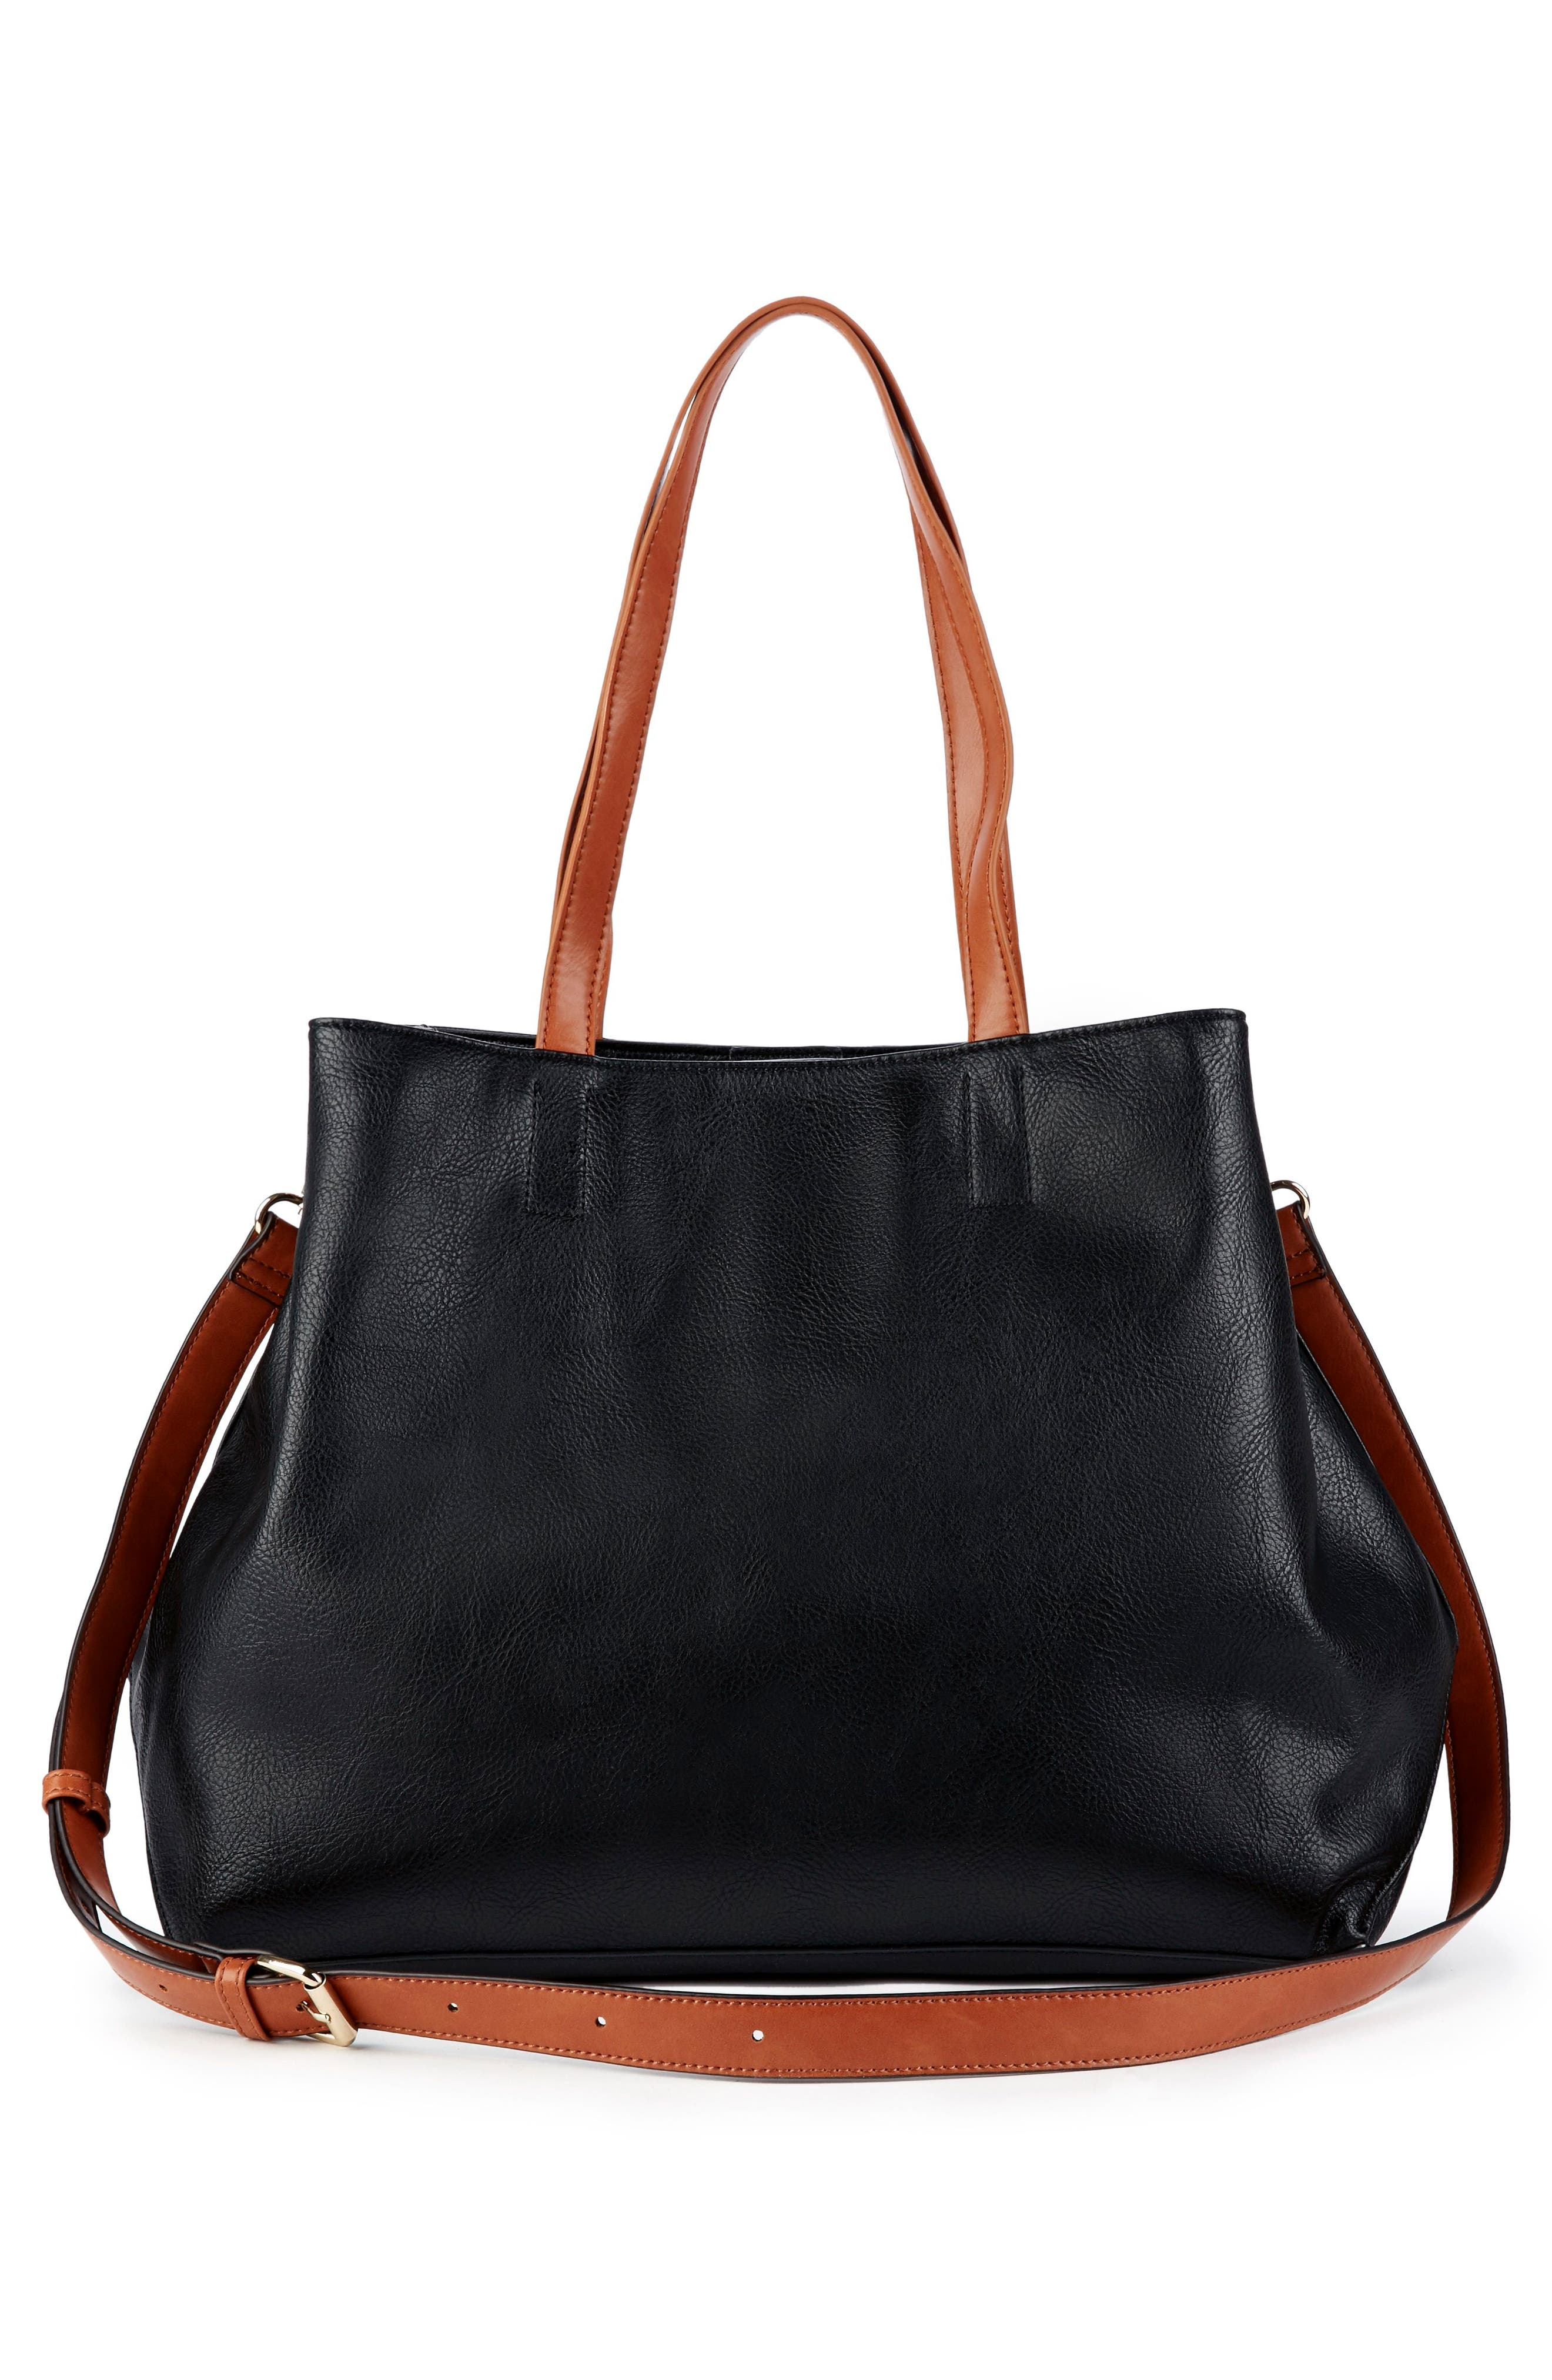 Hester Faux Leather Tote,                             Alternate thumbnail 2, color,                             001